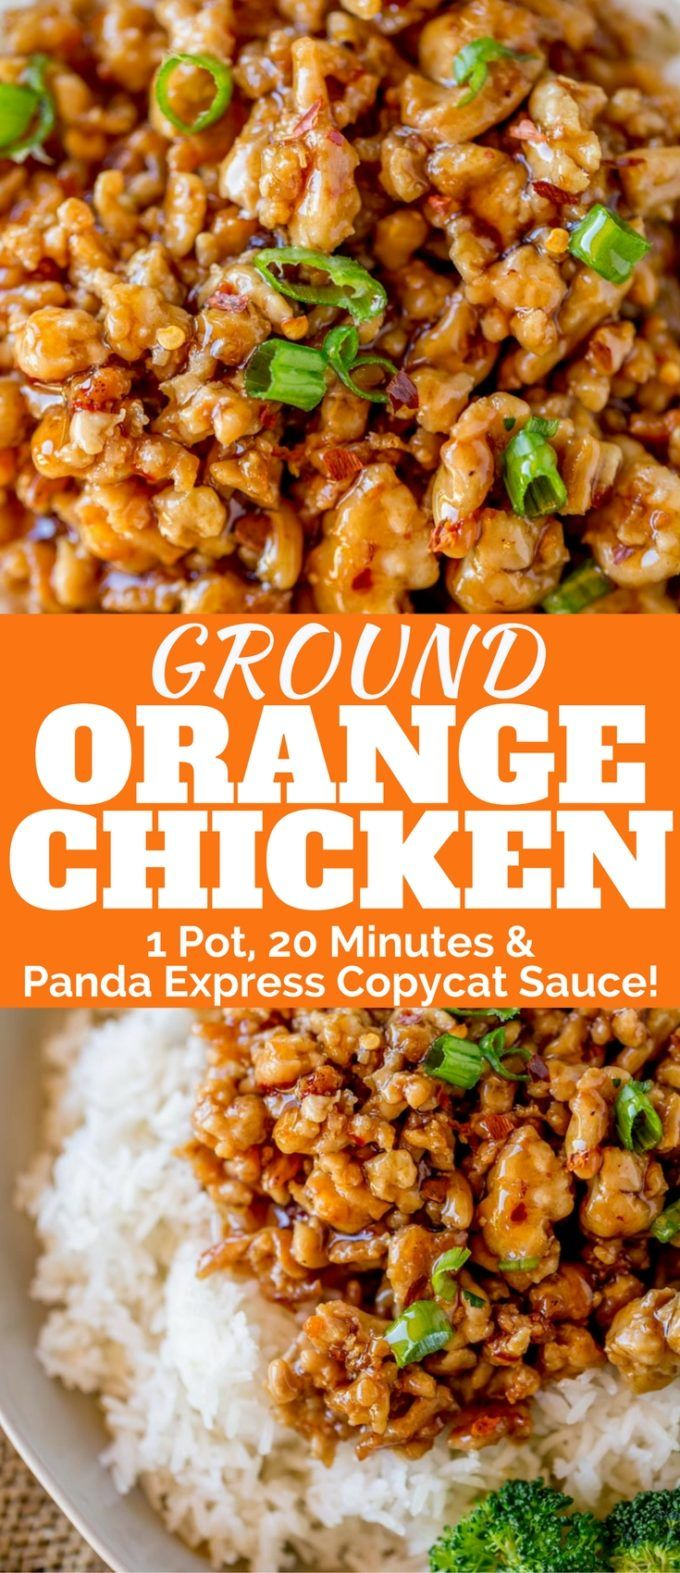 Lean Cuisine Orange Chicken Ingredients